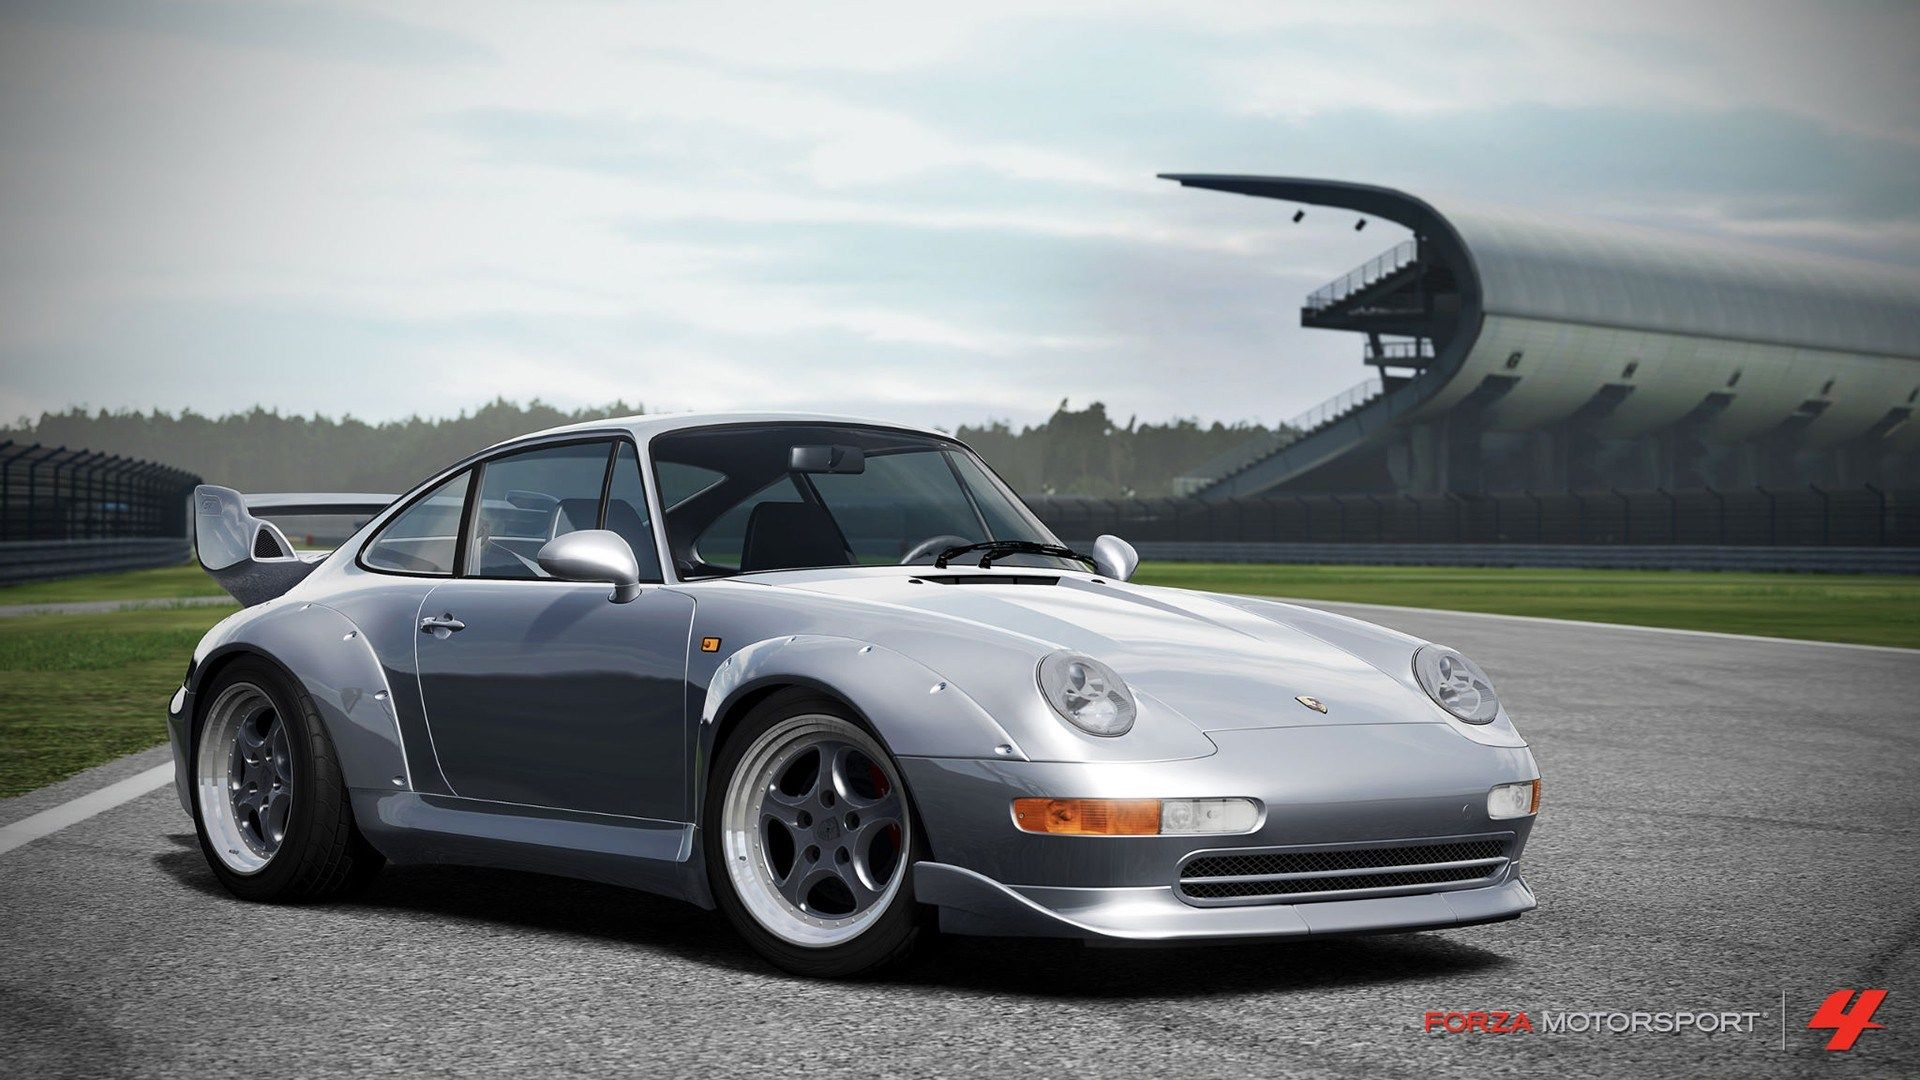 widescreen backgrounds forza motorsport, 321 kB - Wycliffe Gill